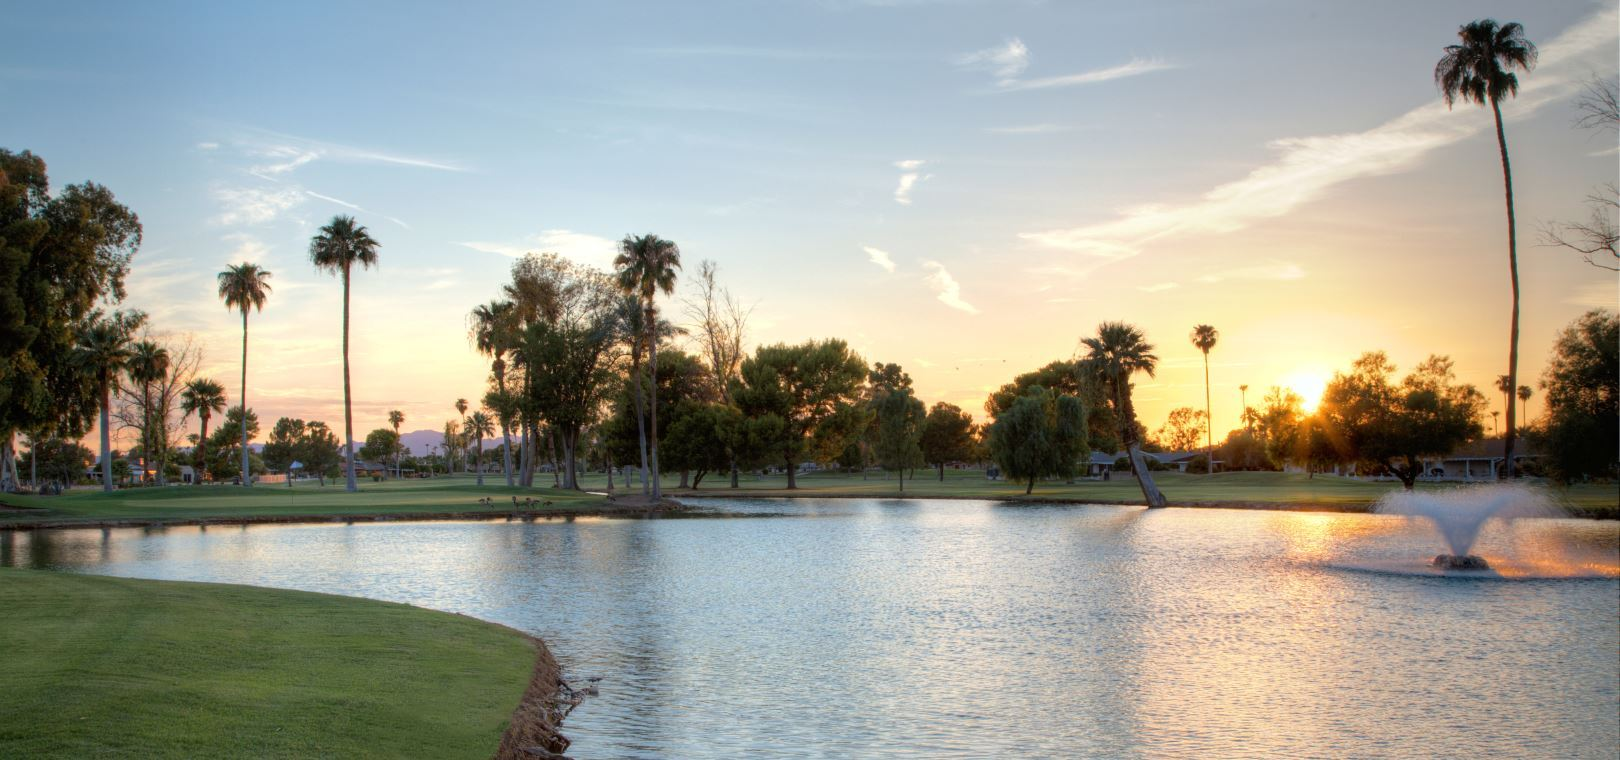 Sun City Country Club has come up with creative ways to increase revenue as many traditional avenues disappeared. Many of those ideas include family-friendly opportunities. (Photo courtesy of Sun City Country Club)